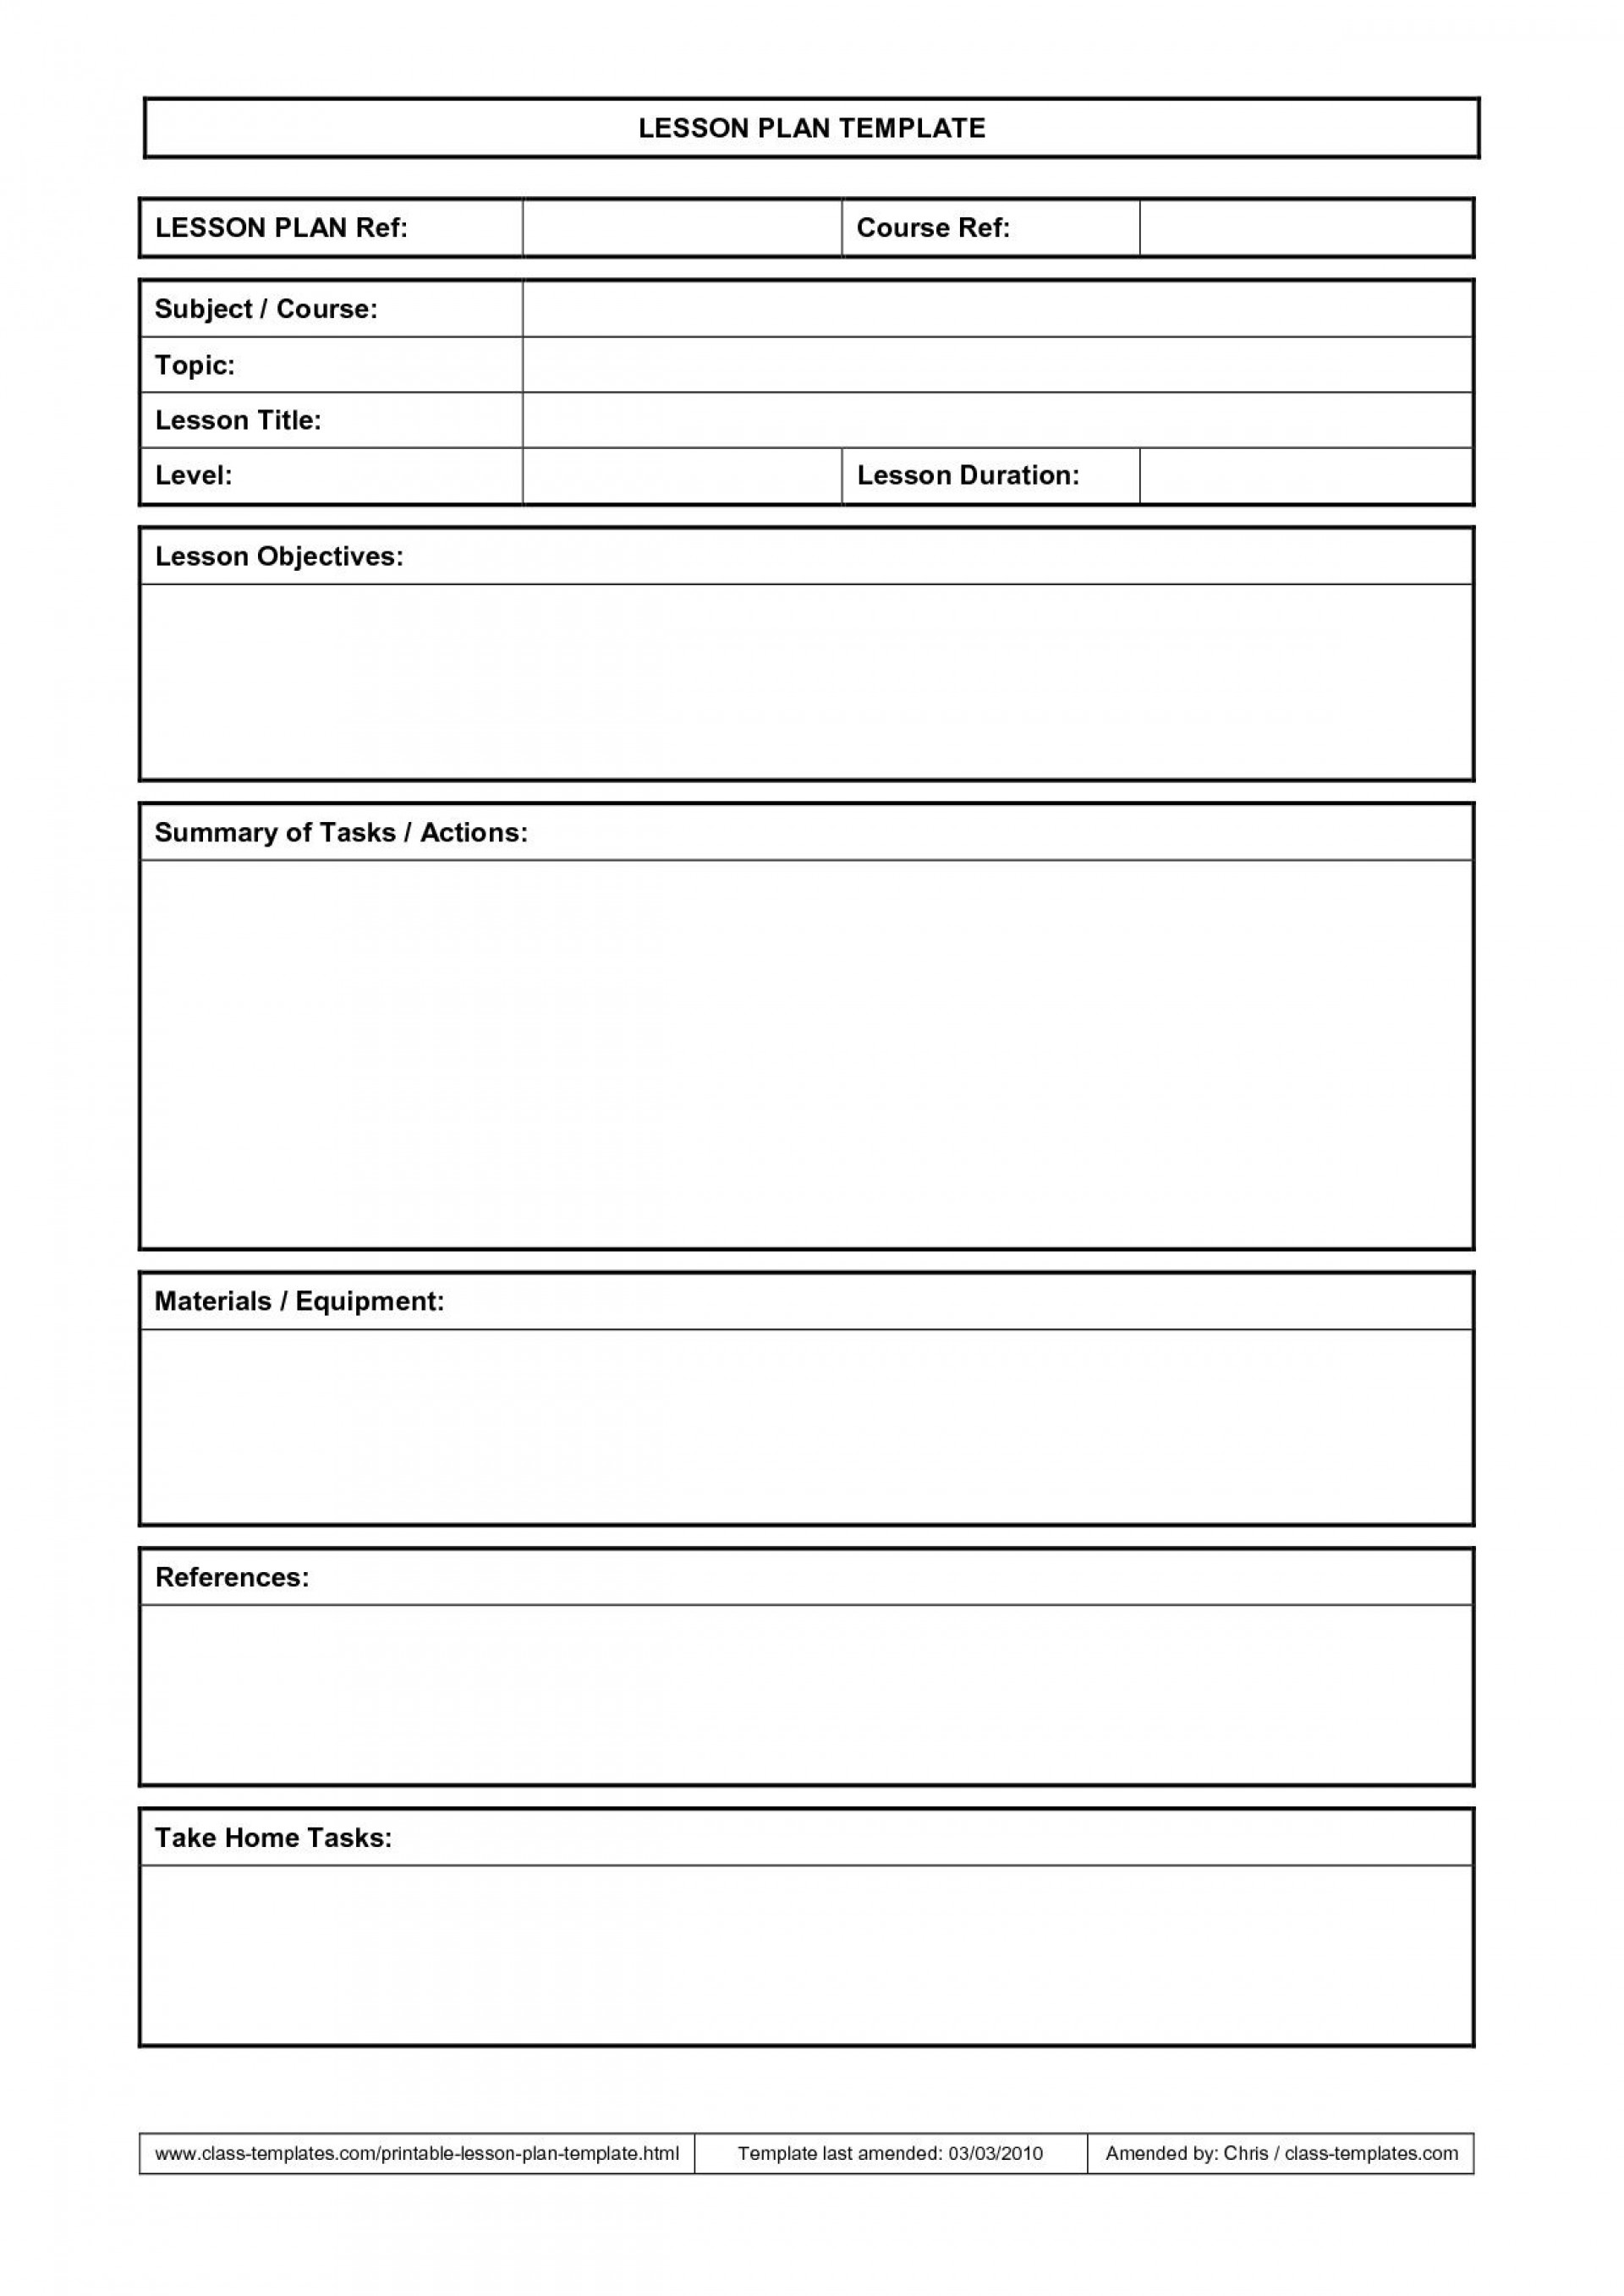 000 Amazing Best Lesson Plan Template High Def  Practice Format Pdf1920